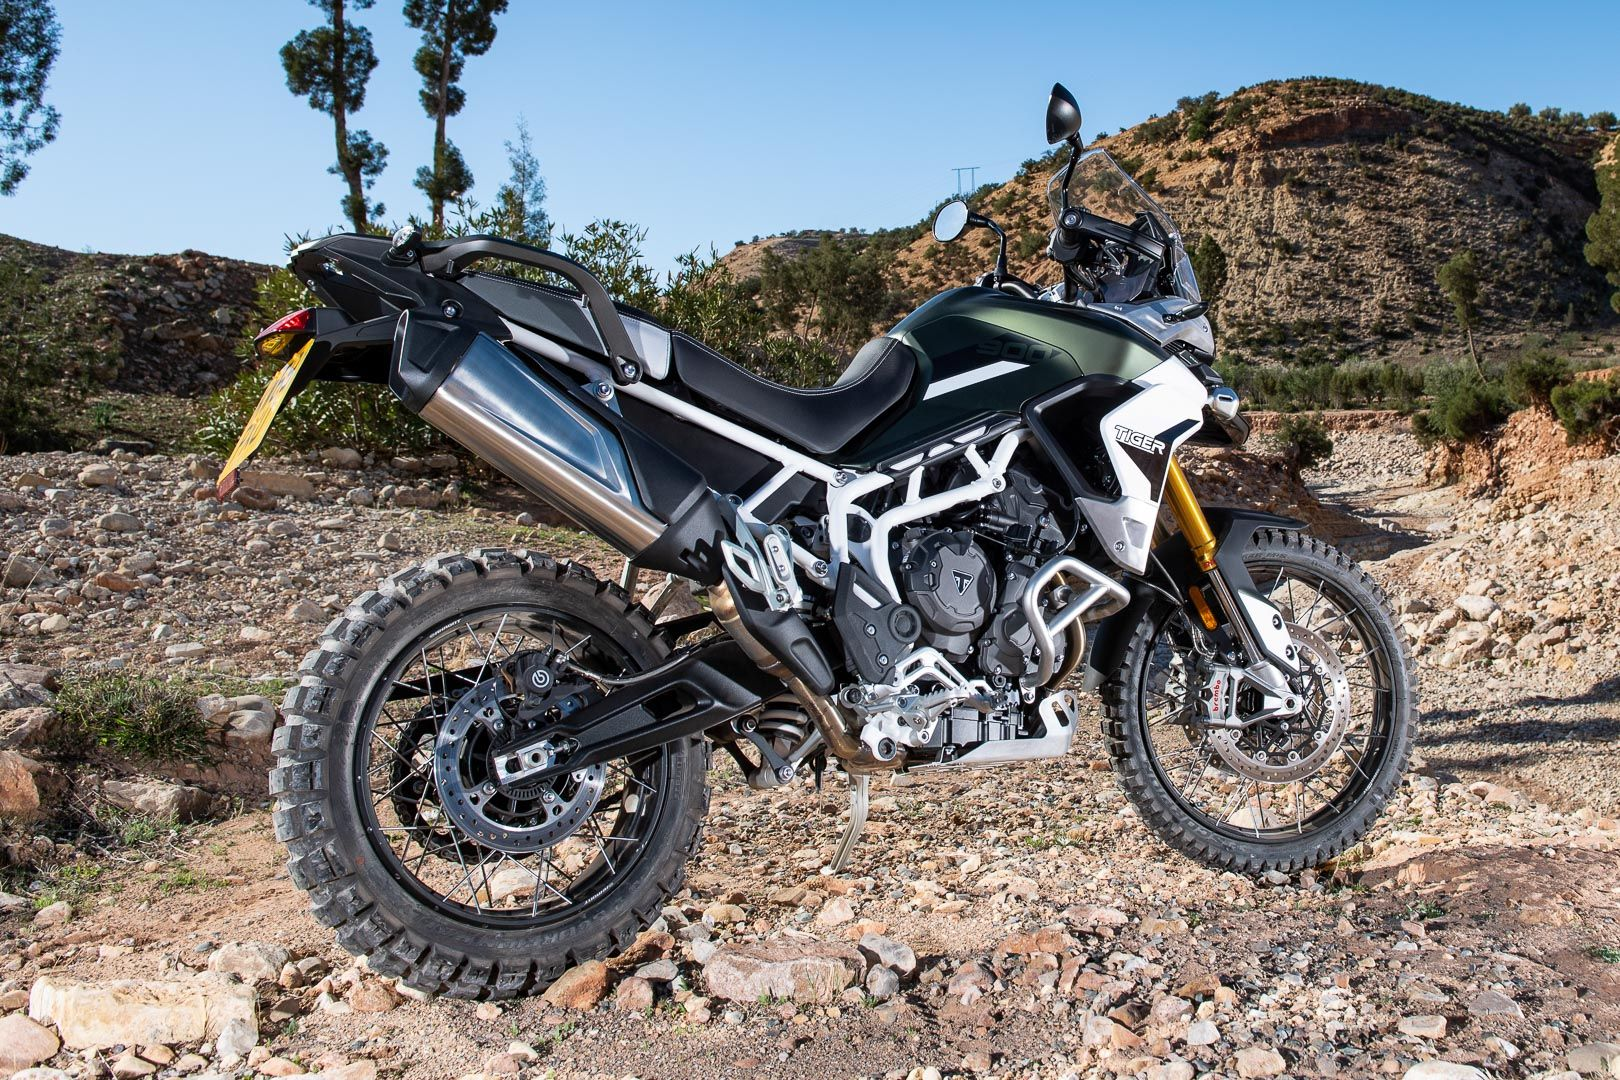 2020 Triumph Tiger 900 Rally Pro Review 27 Fast Facts In 2020